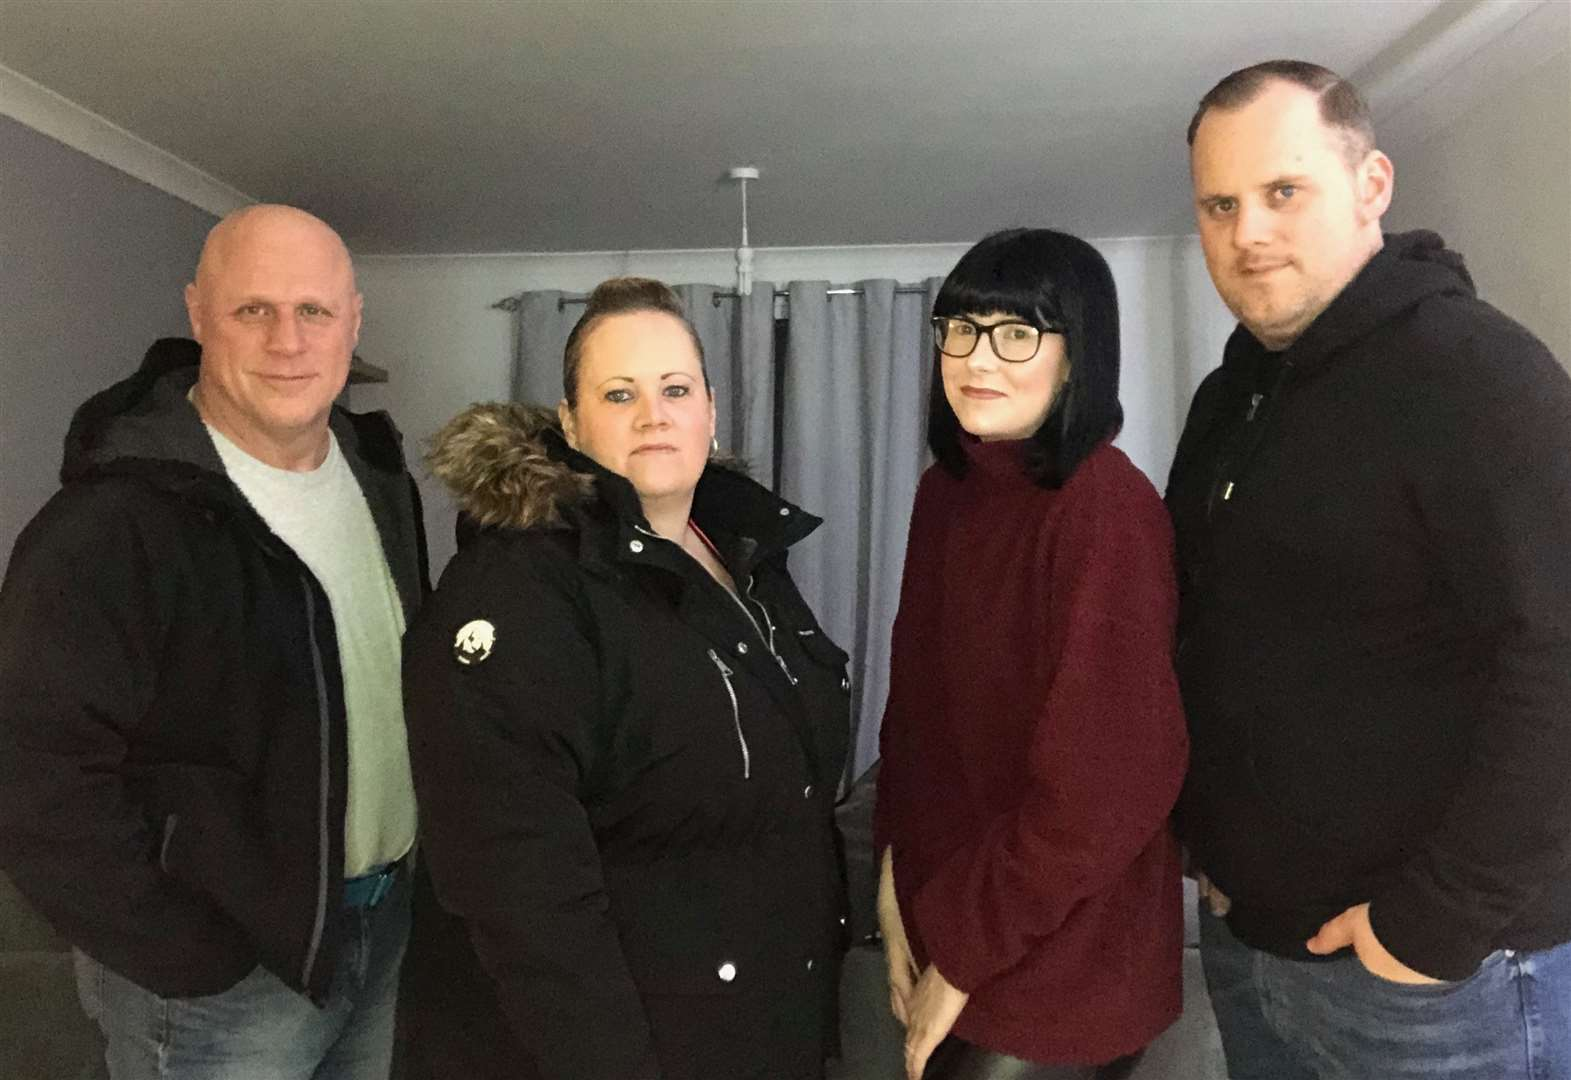 Siblings set up ghost hunting firm